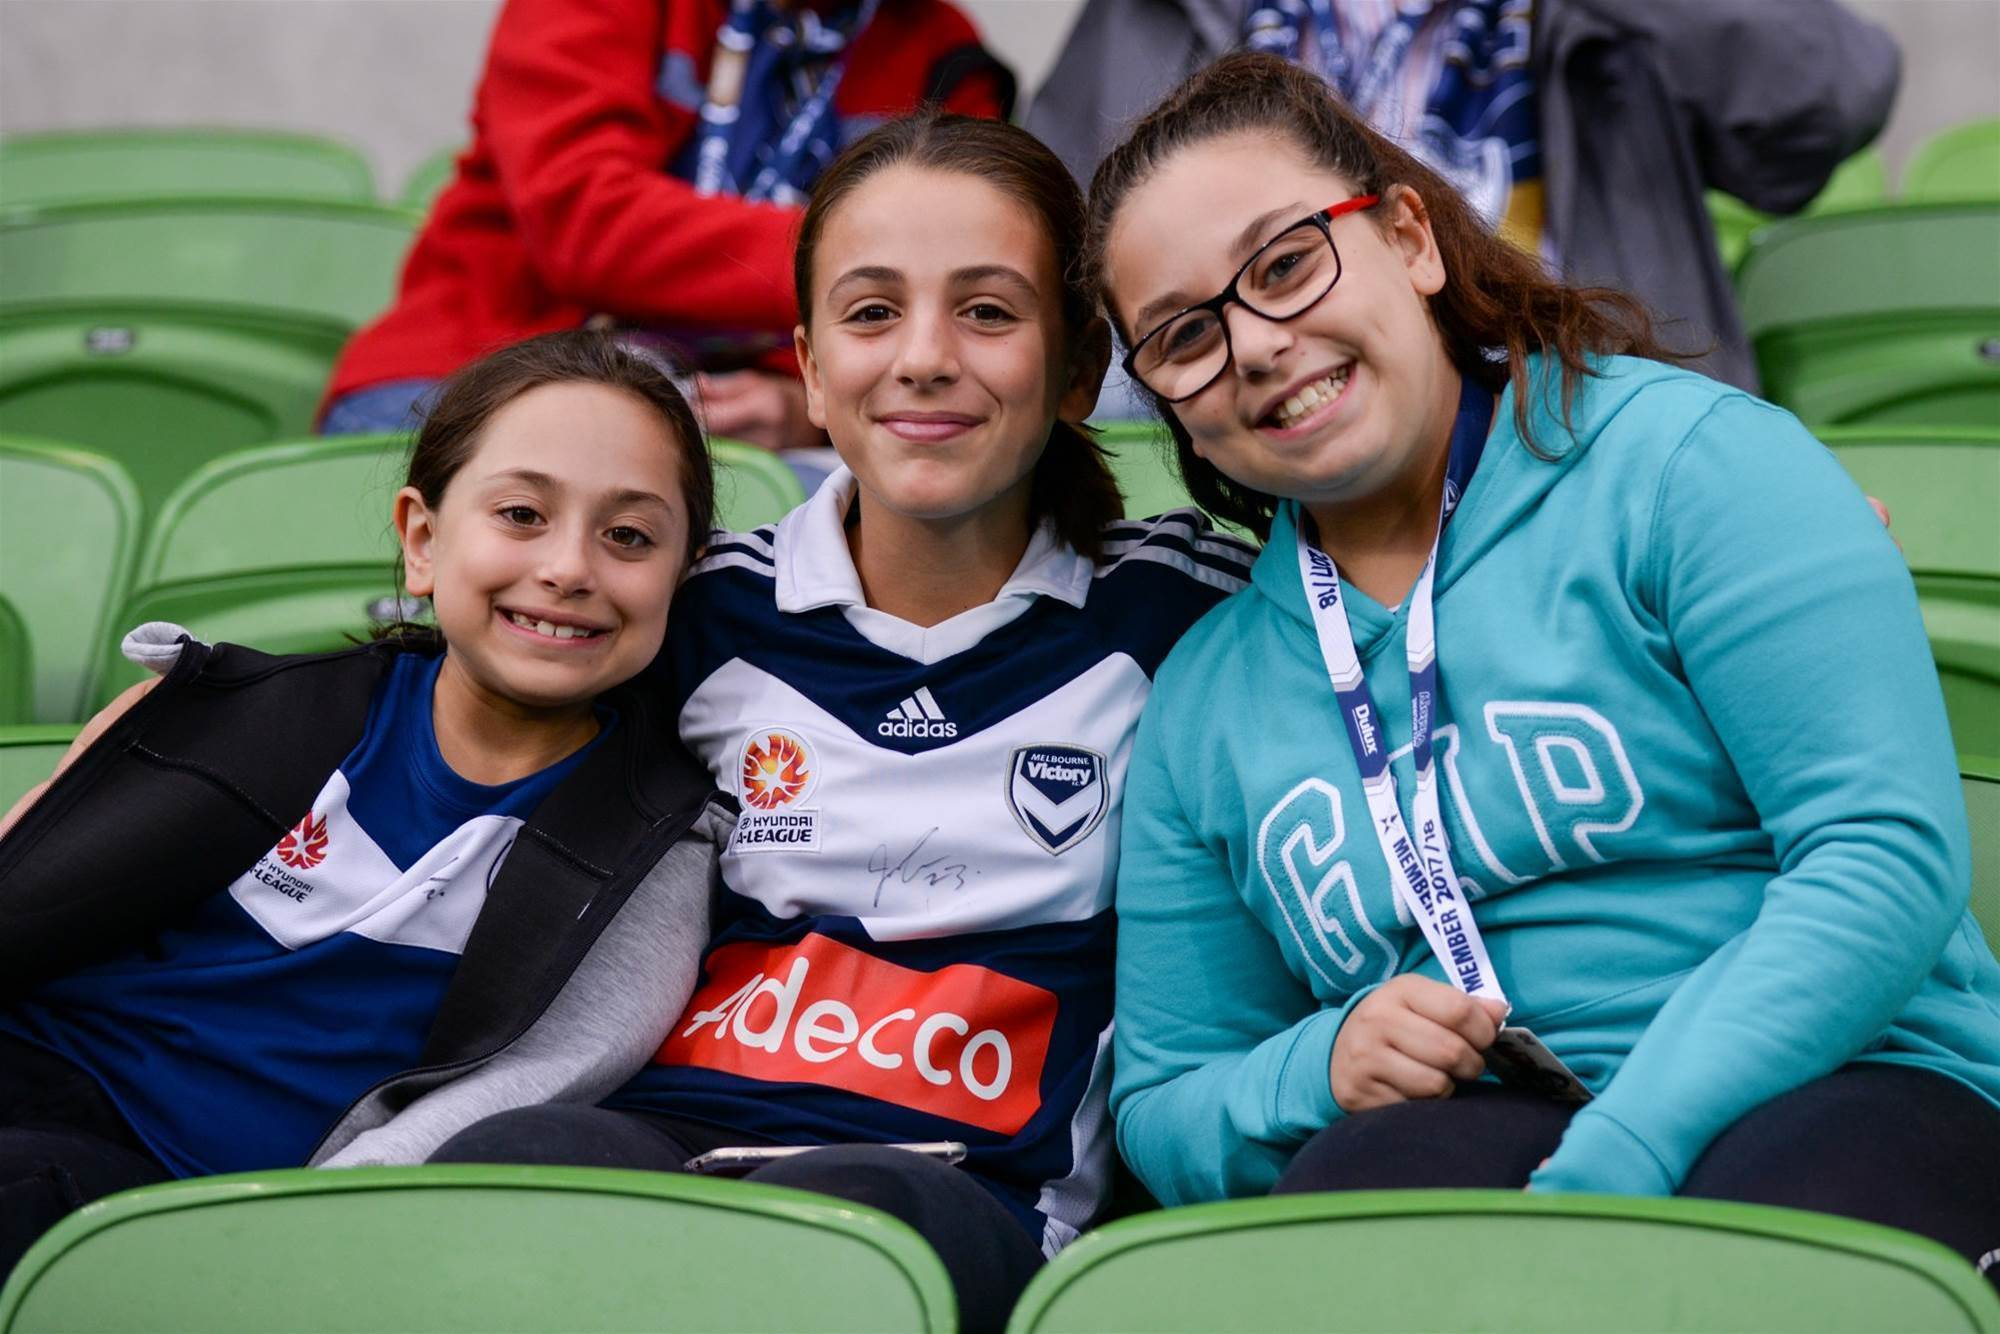 Melbourne Victory v Adelaide United pic special